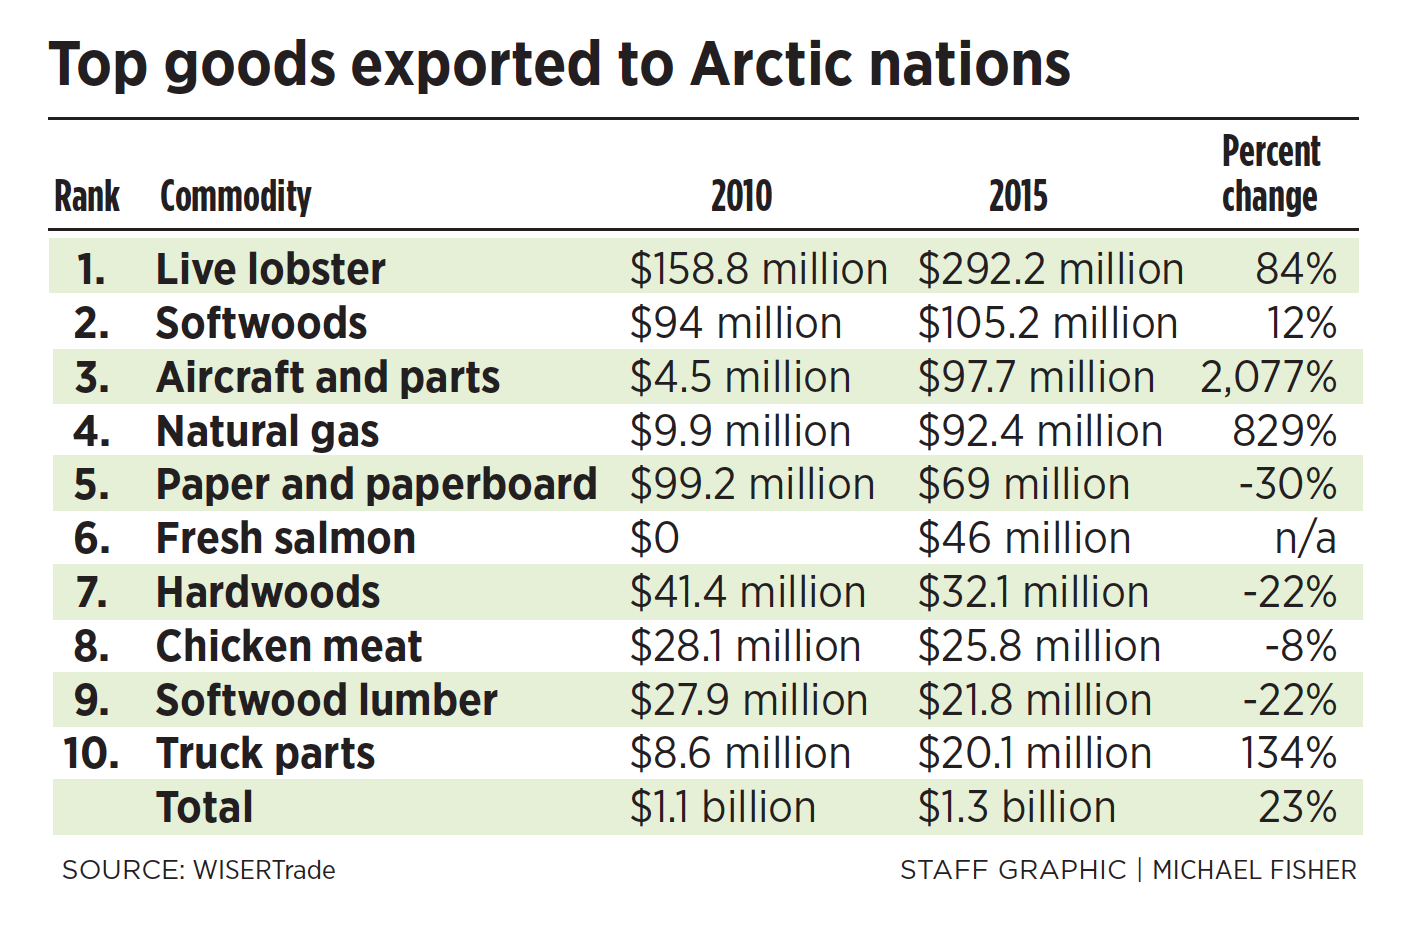 Top goods exported to Arctic nations